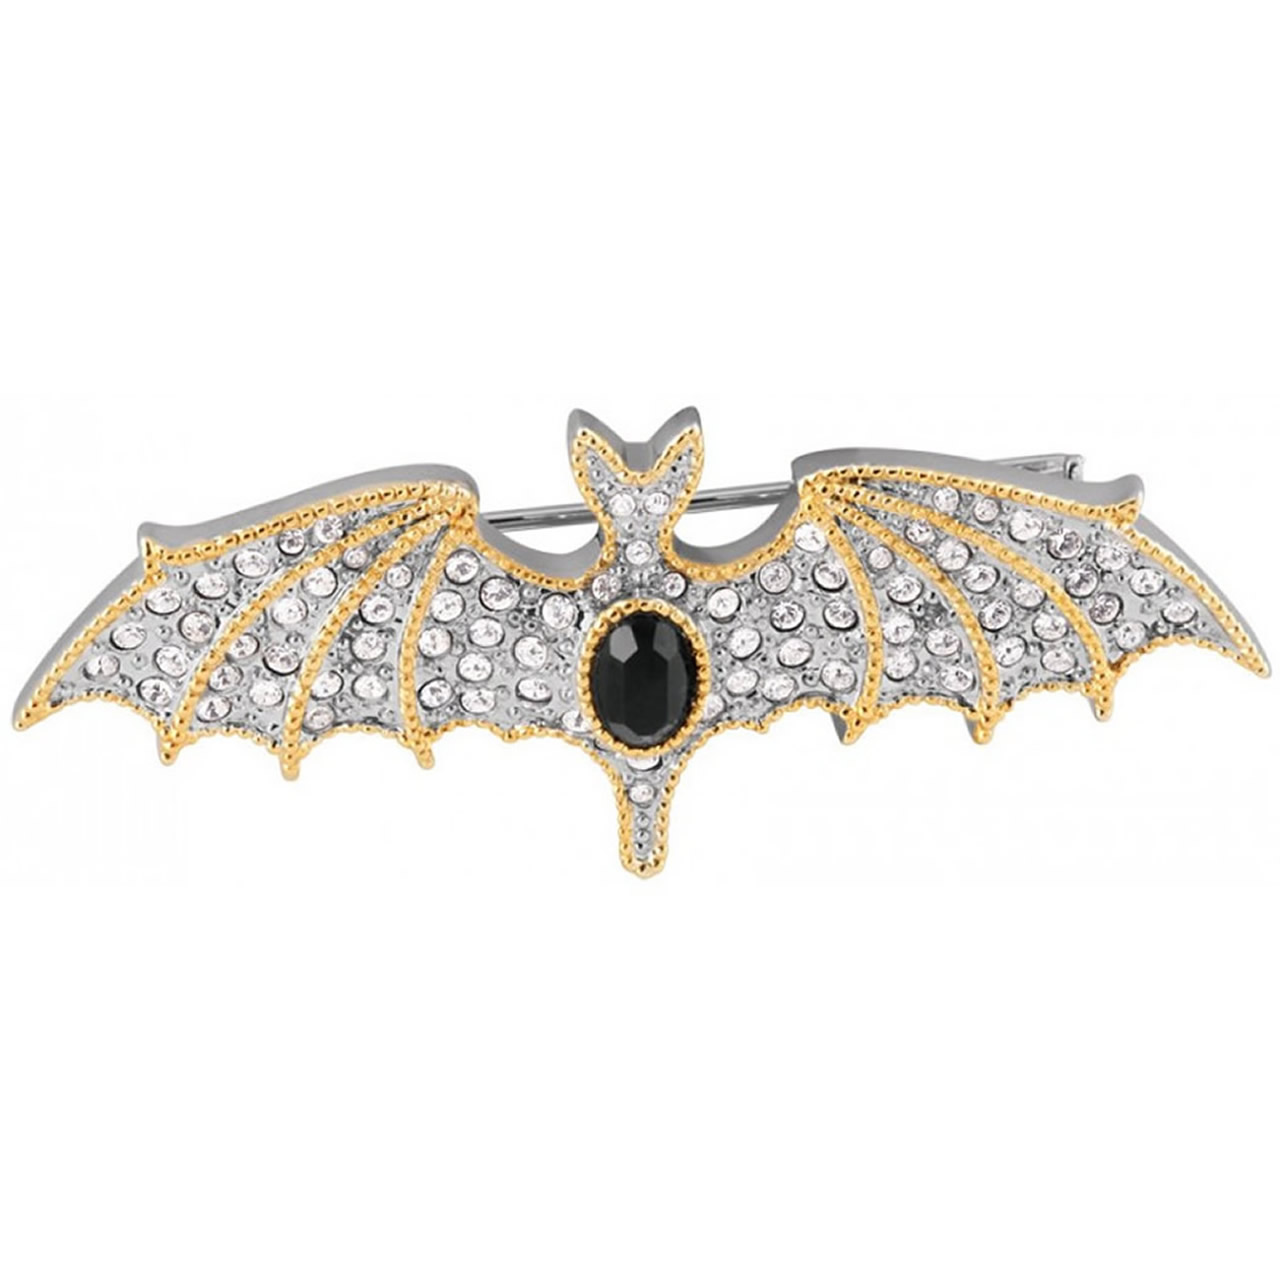 Unusual, Small Silver And Gold Crystal Bat Brooch